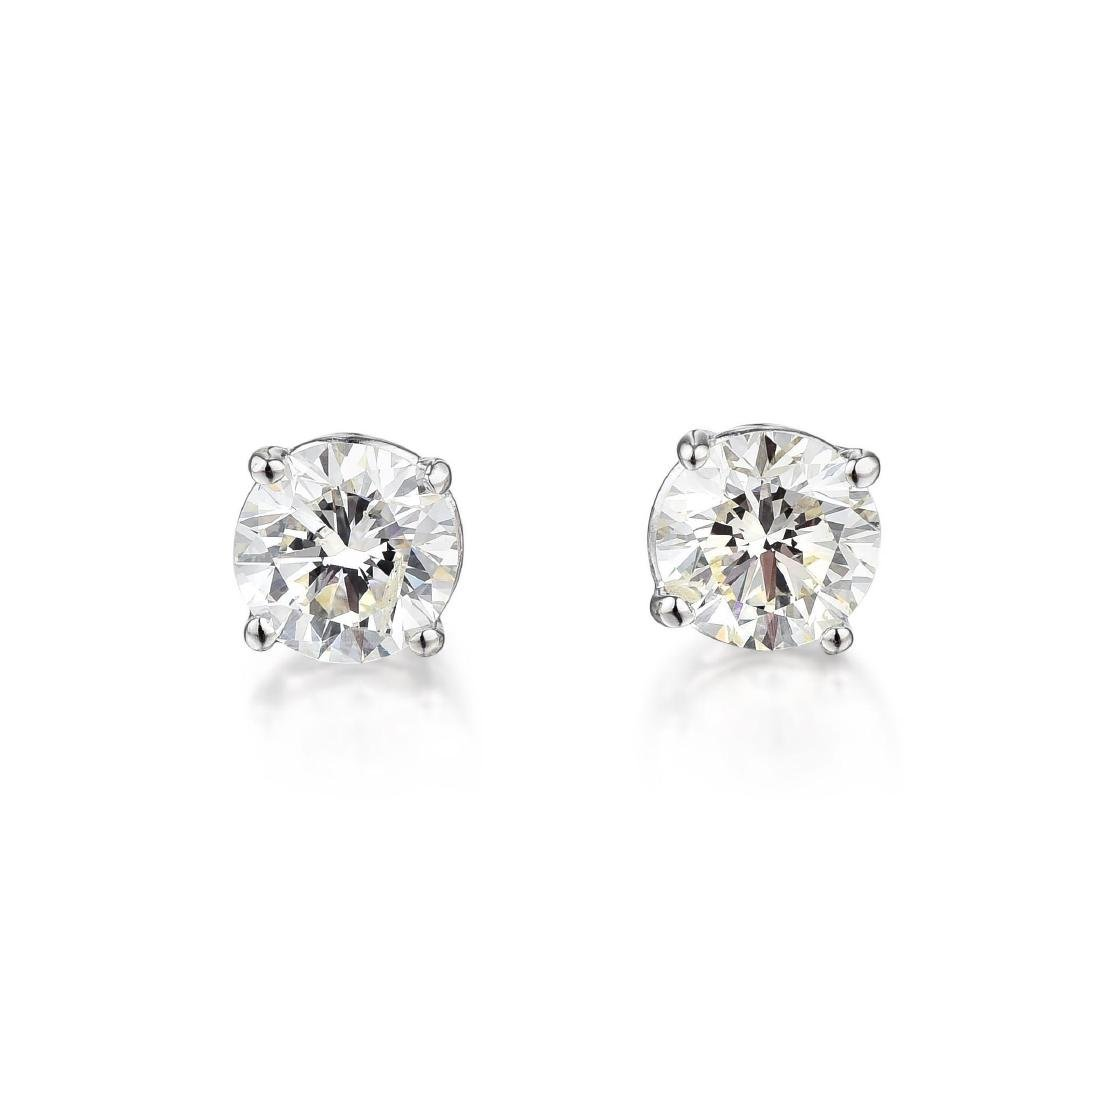 A Pair of 14K Gold Diamond Stud Earrings